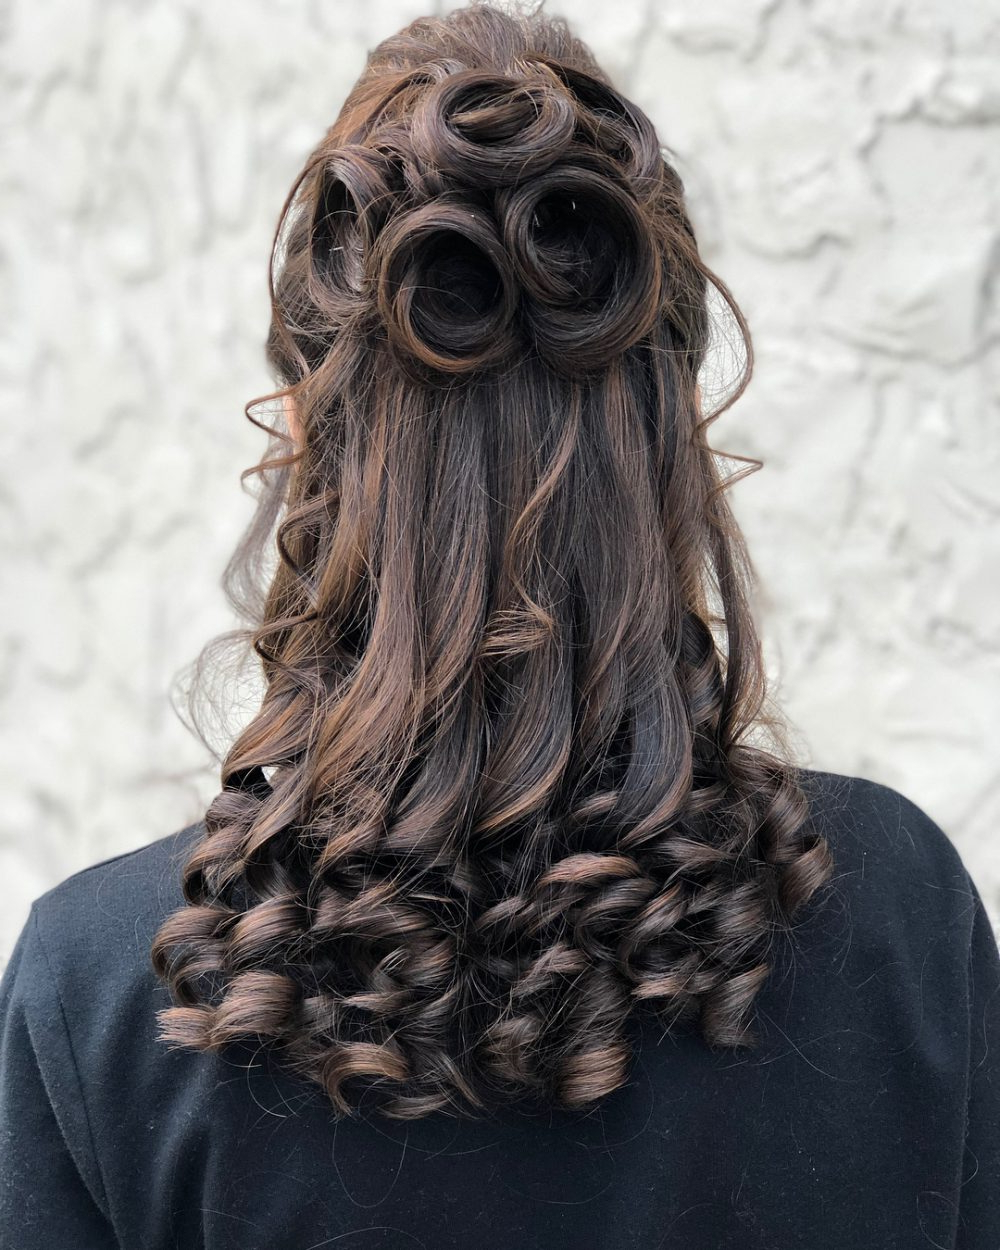 Latest Elegant Curled Prom Hairstyles Regarding 23 Cute Prom Hairstyles For 2019 – Updos, Braids, Half Ups & Down Dos (View 3 of 20)